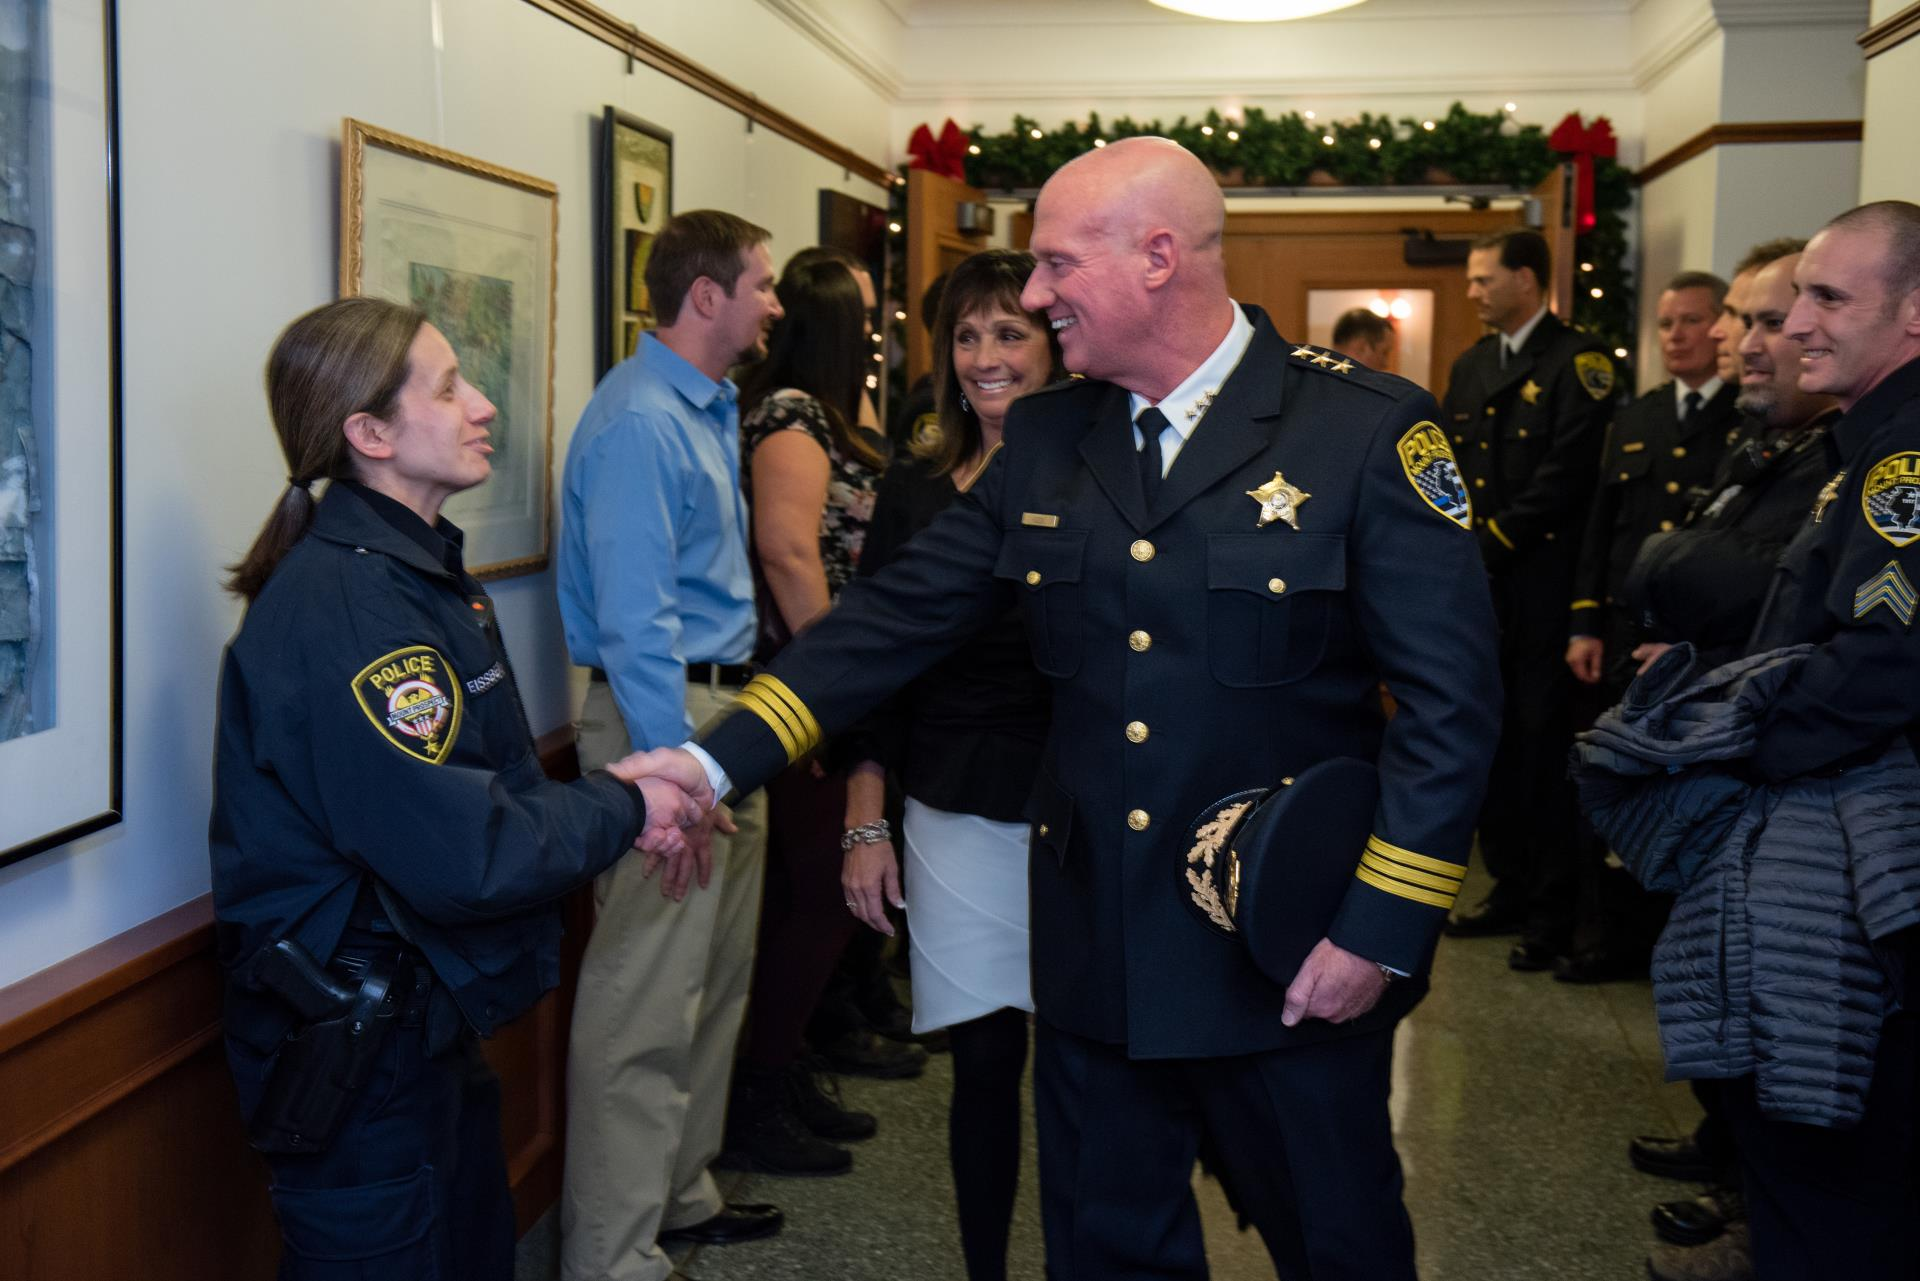 Chief Koziol Swearing-In Ceremony Final-4268